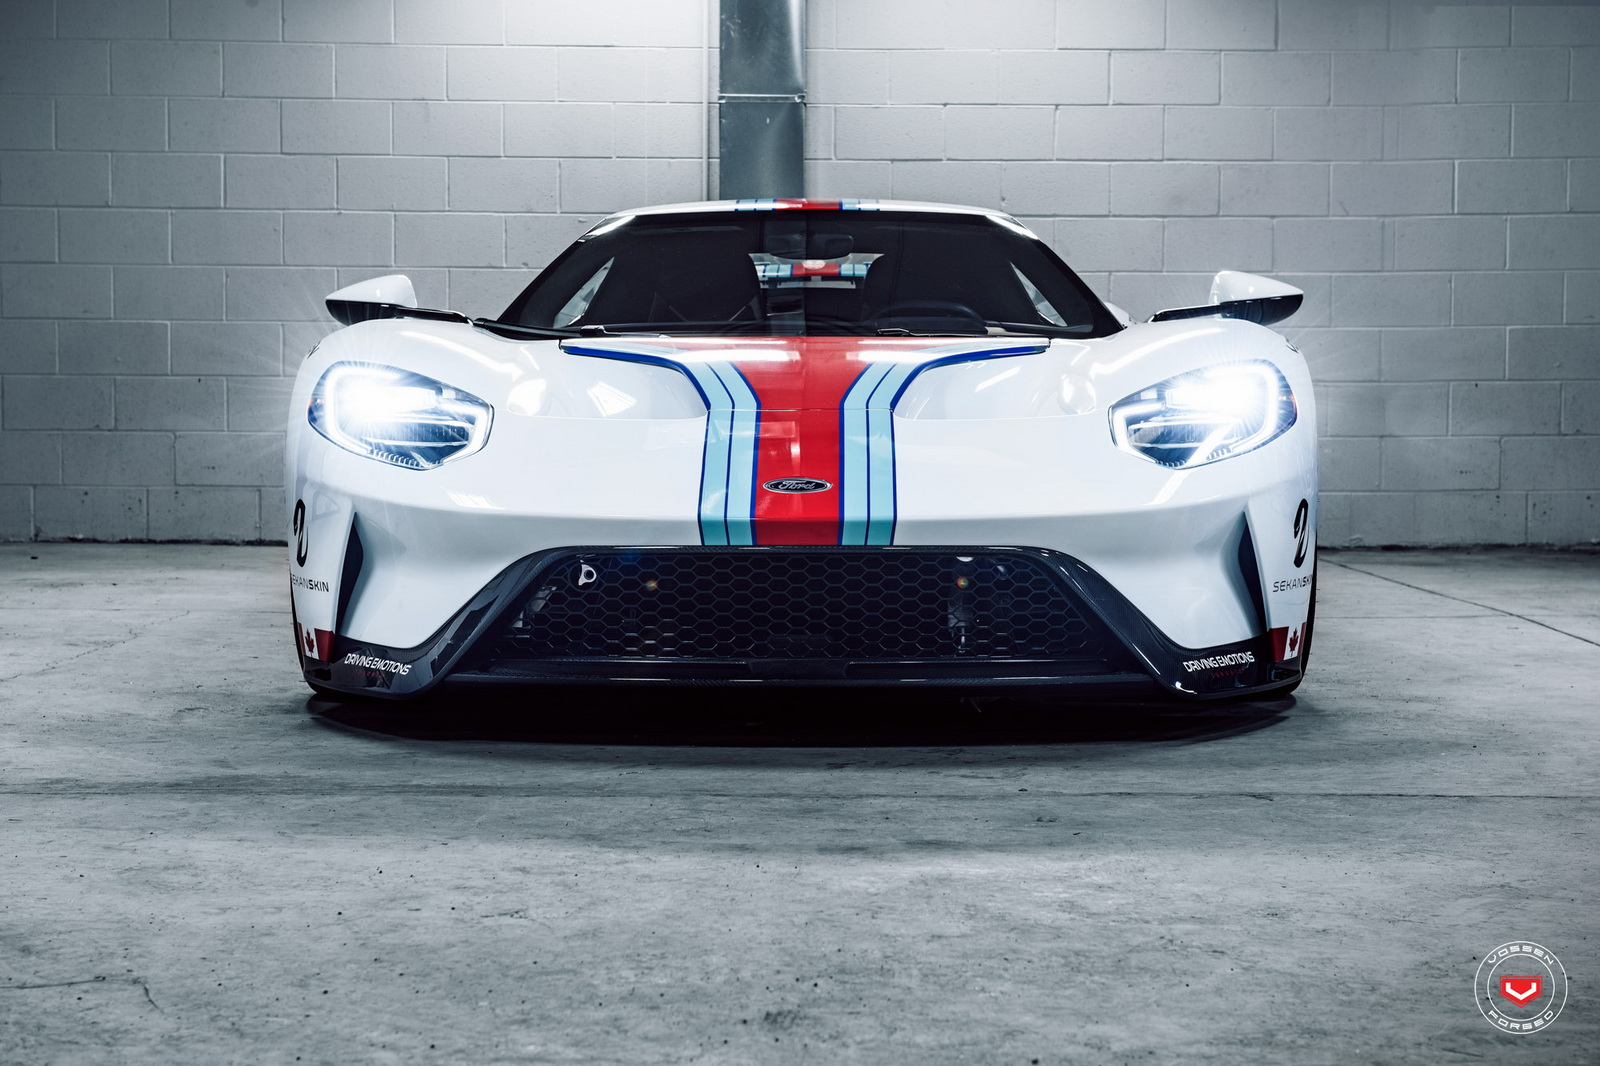 ford-gt-martini-livery-vossen-wheels-11